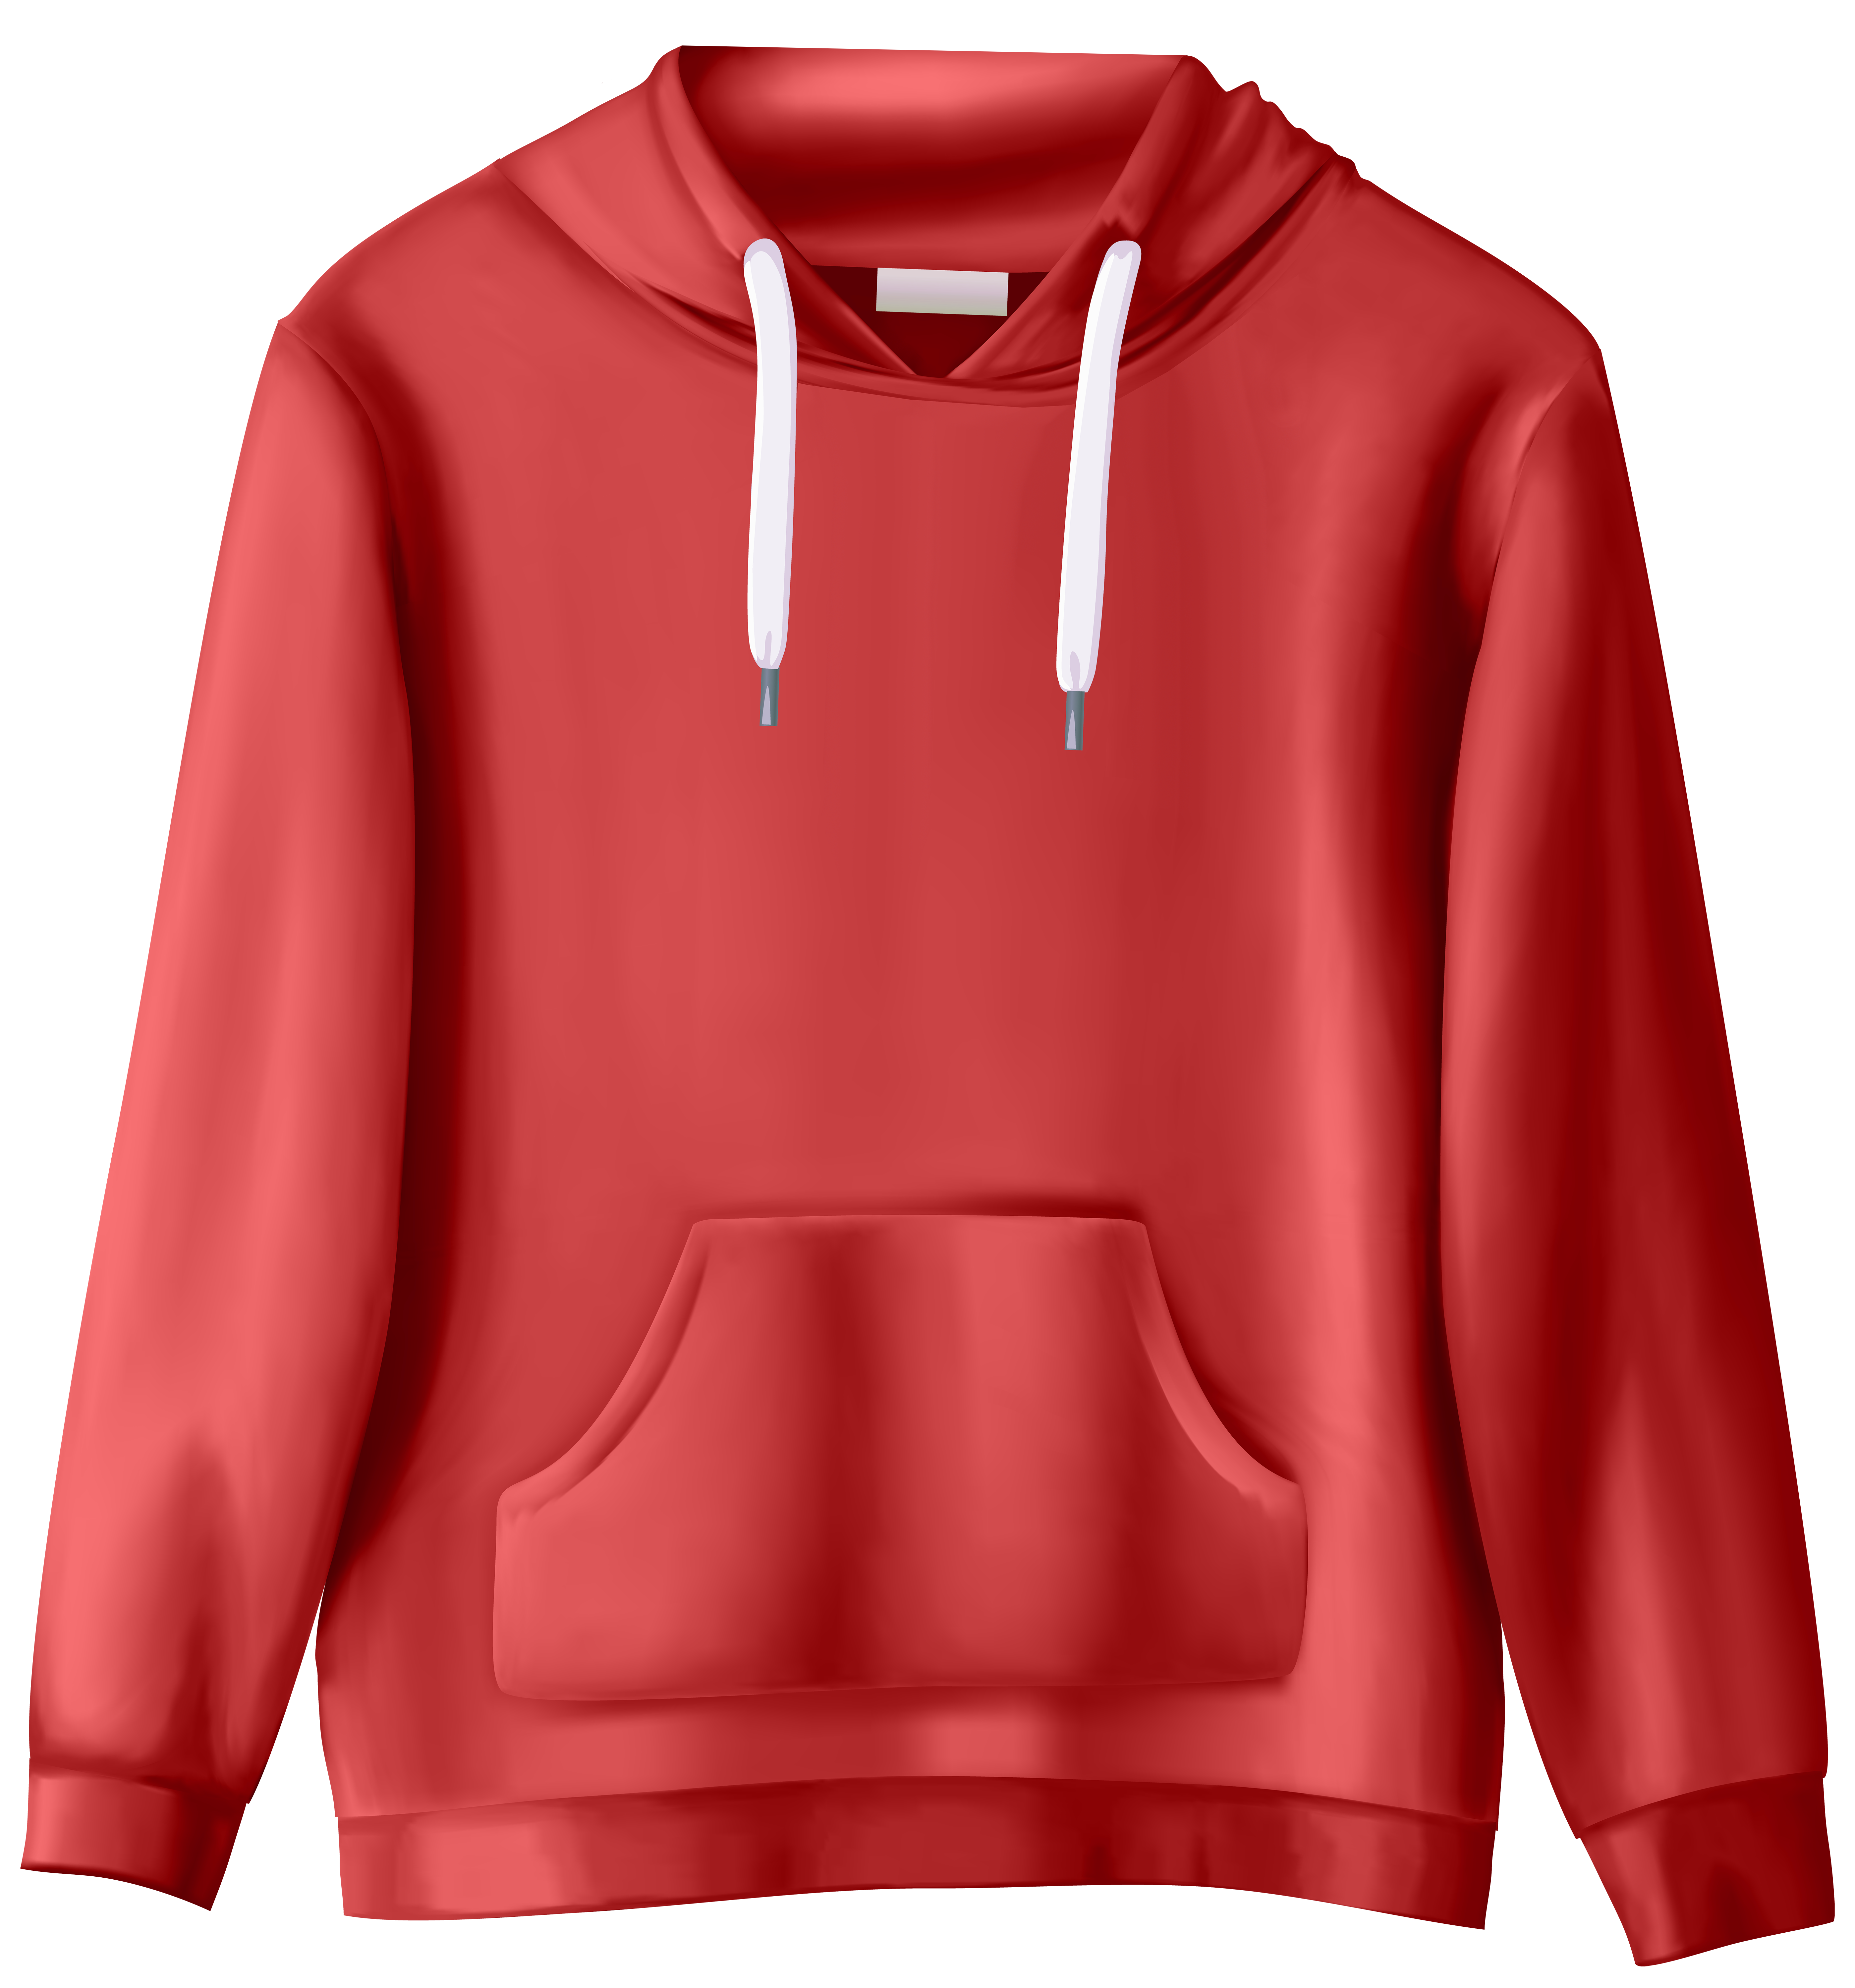 Sweat shirt clipart jpg freeuse download Red Sweatshirt PNG Clip Art - Best WEB Clipart jpg freeuse download